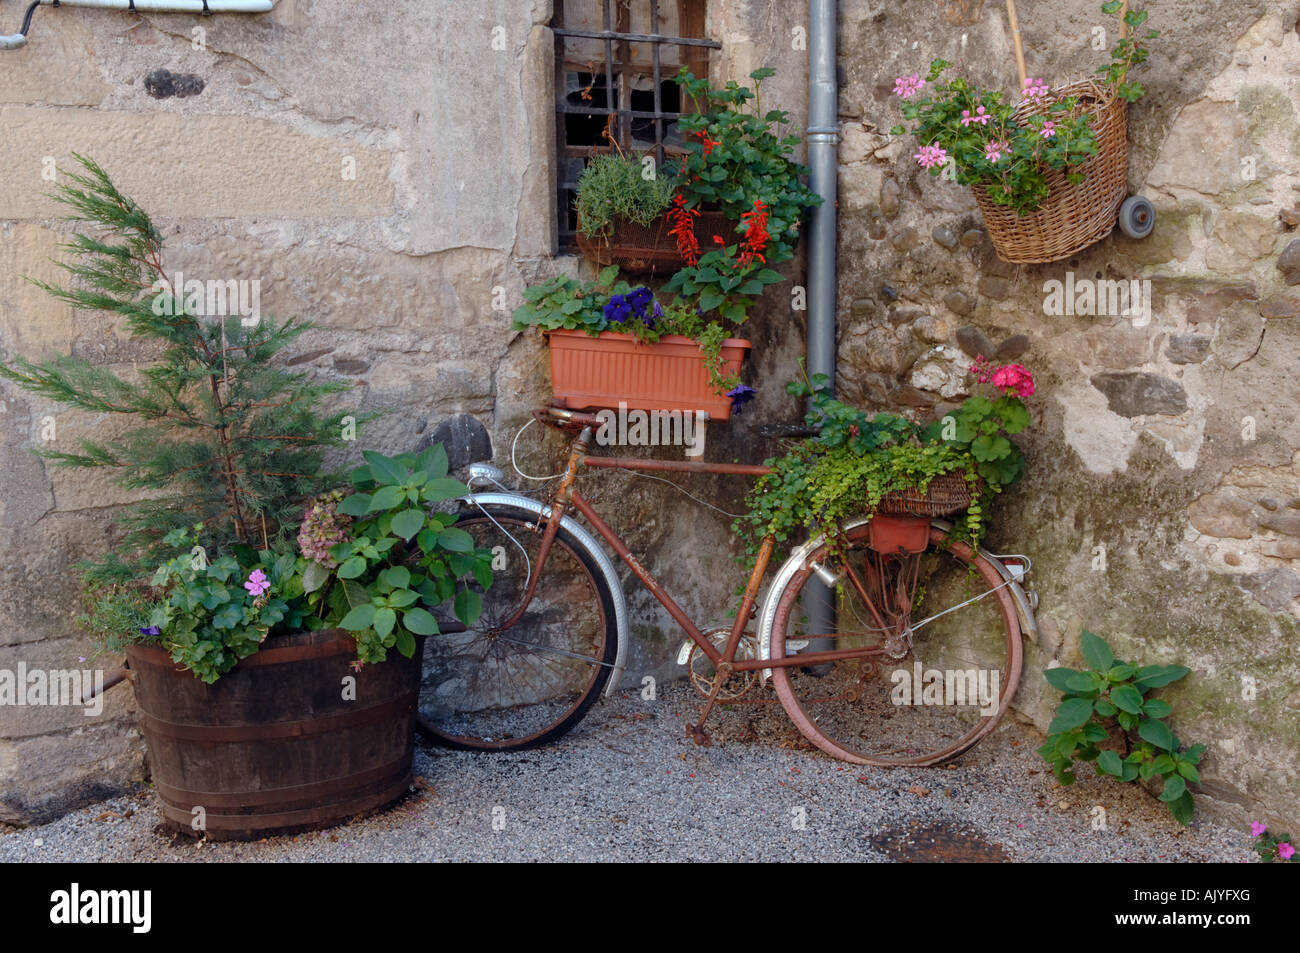 0ld bicycle at Ste Eulalie d Olt in the Aveyron 12 departement of France One of Les Plus Beaux Villages de France - Stock Image